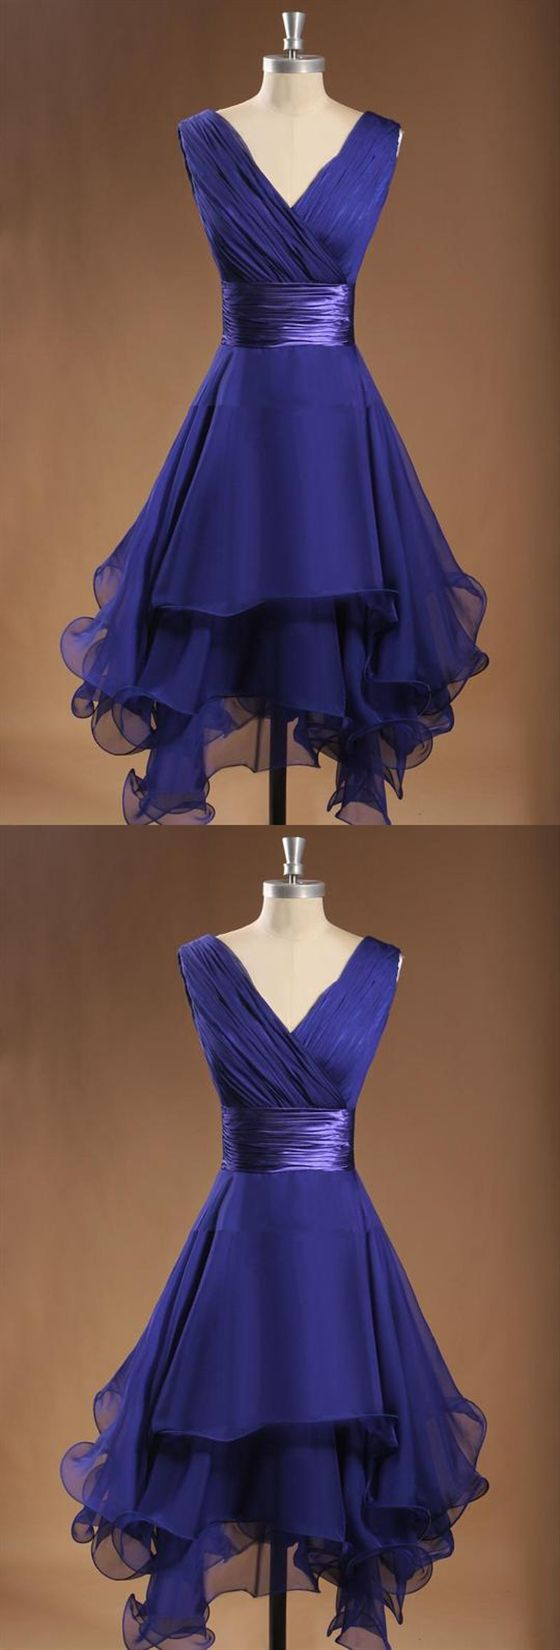 Simple V Neck Sleeveless Tiered Ruffles Chiffon Short Bridesmaid Dress #chiffonshorts